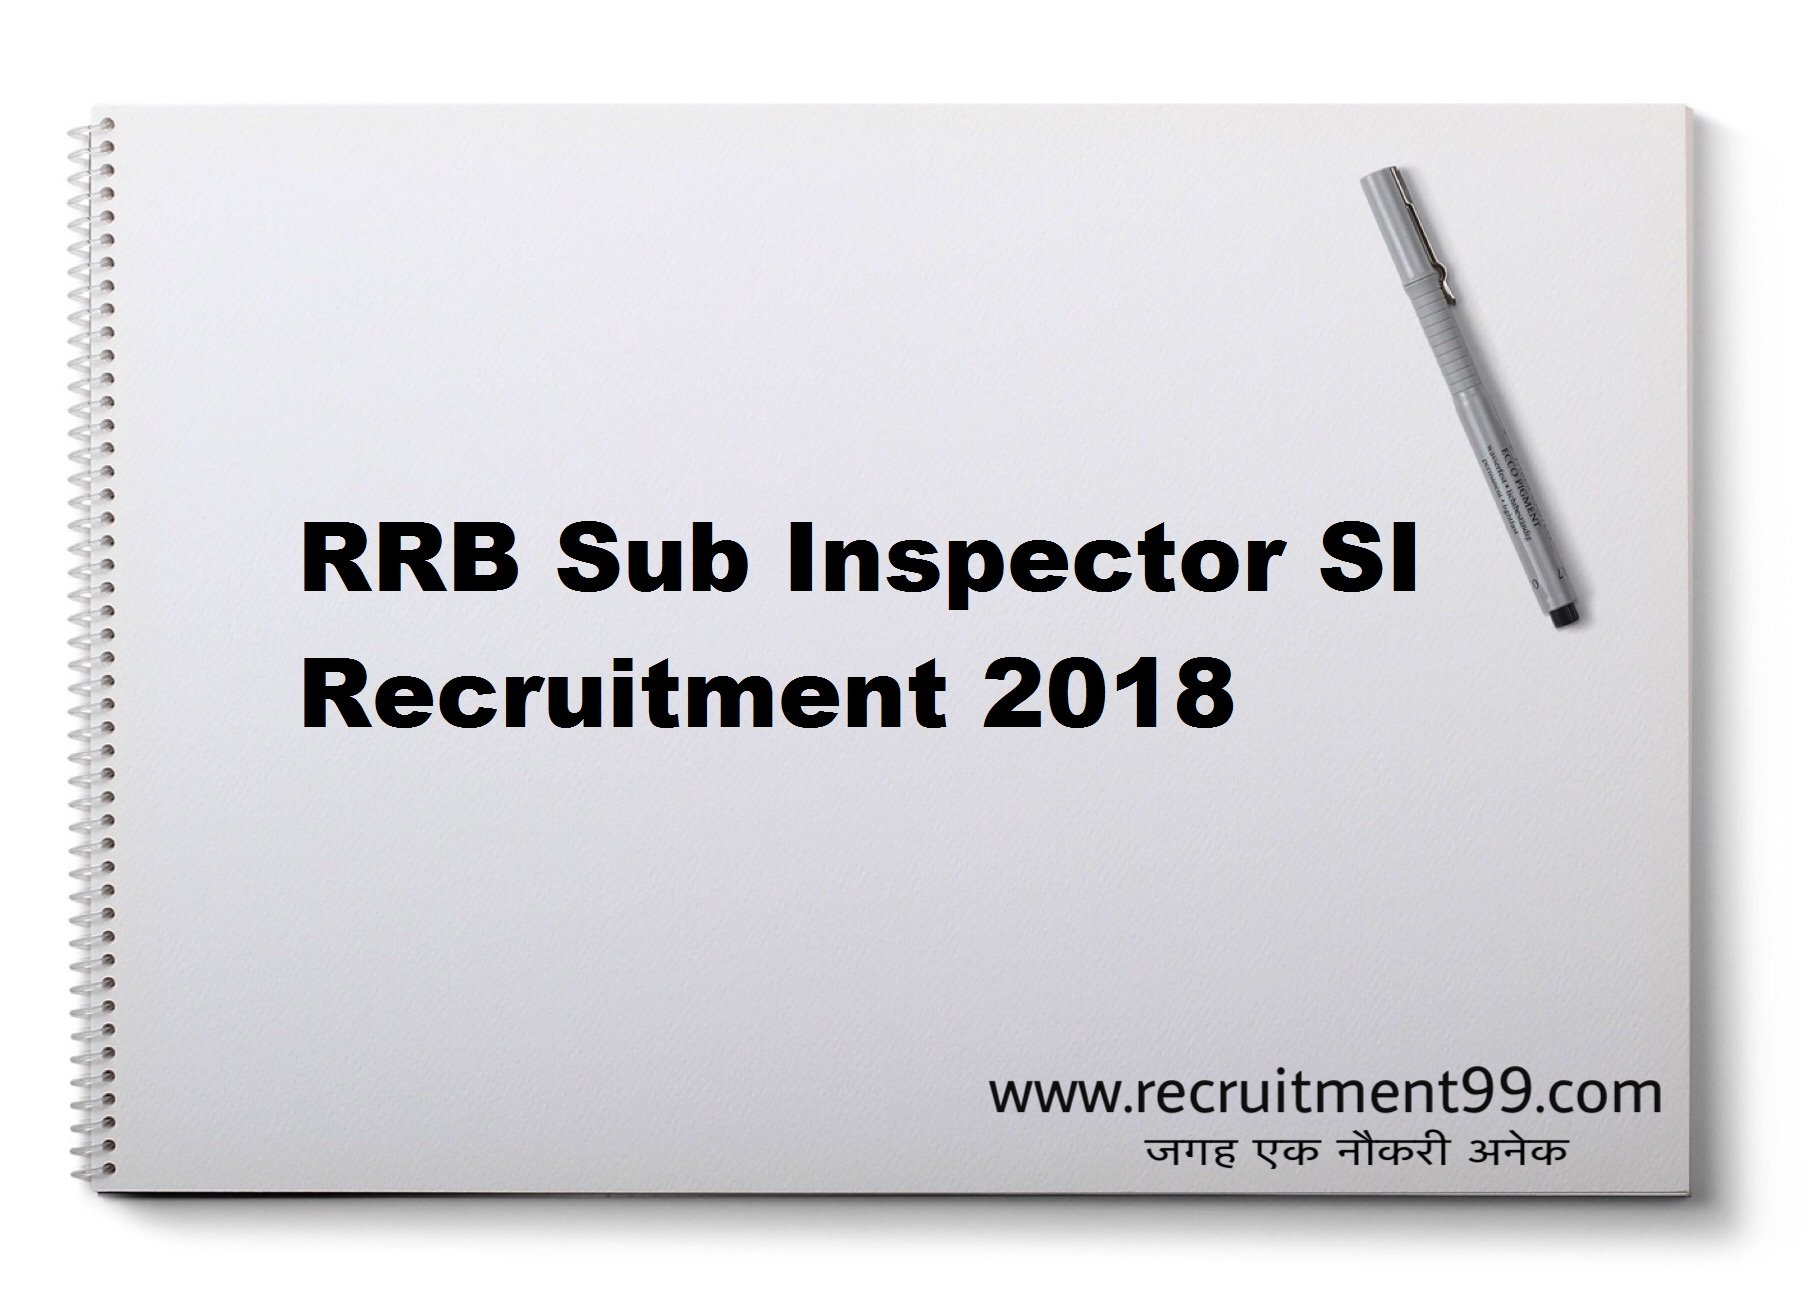 RPF Sub Inspector (SI) Recruitment Admit Card Result 2018